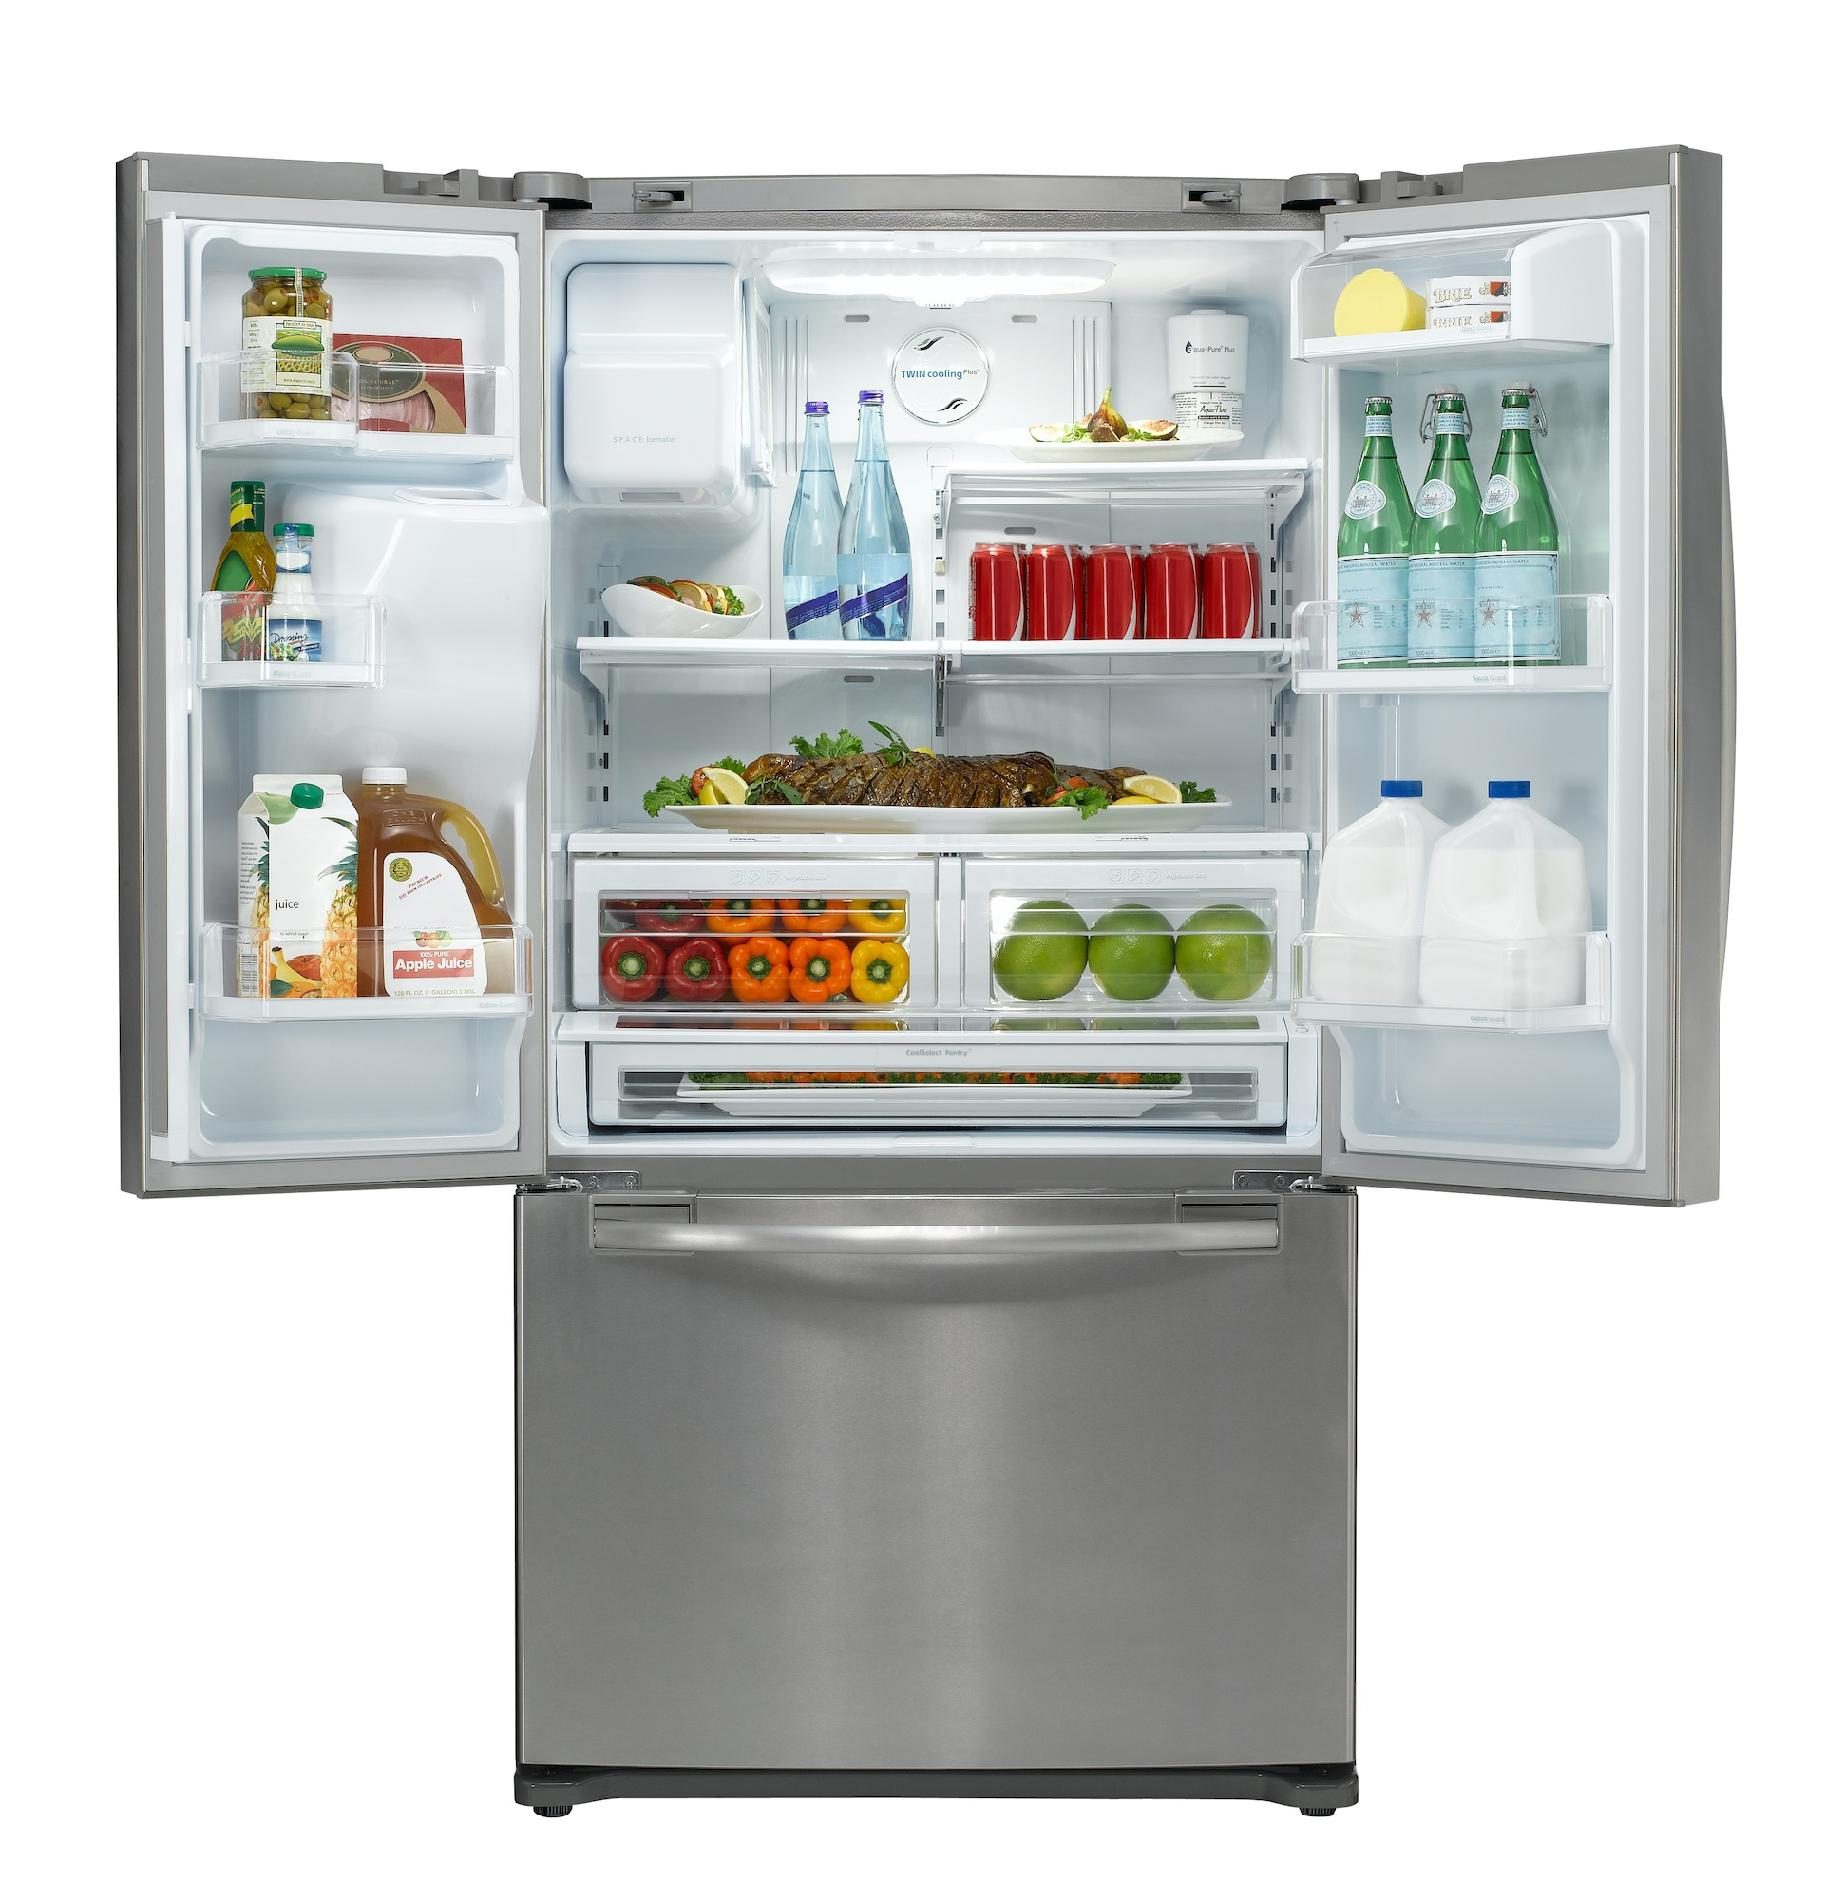 Samsung 23 cu. ft. Counter-Depth French Door Refrigerator - Stainless Steel